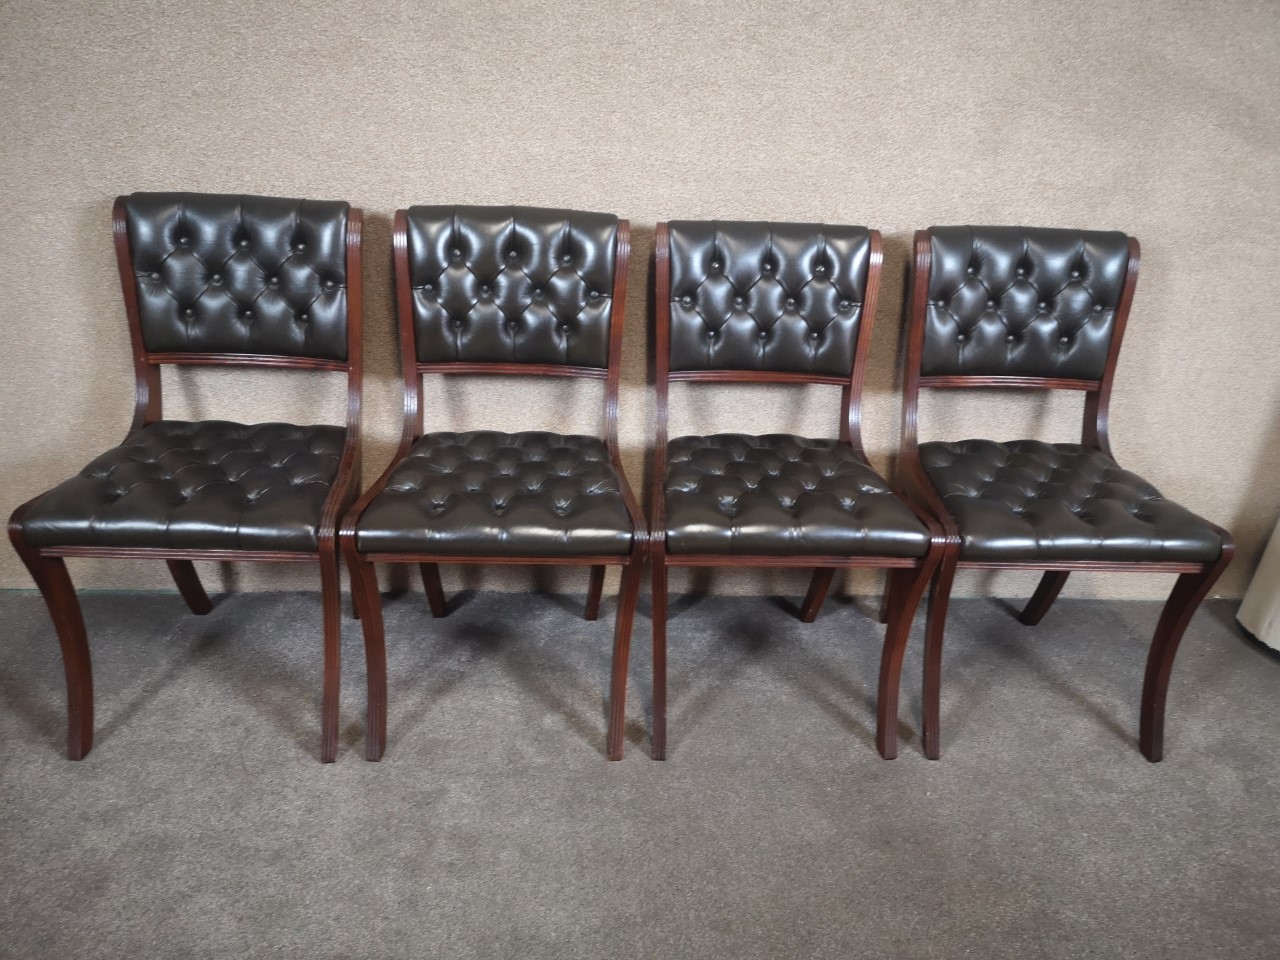 Set of 4 Chesterfield chairs画像